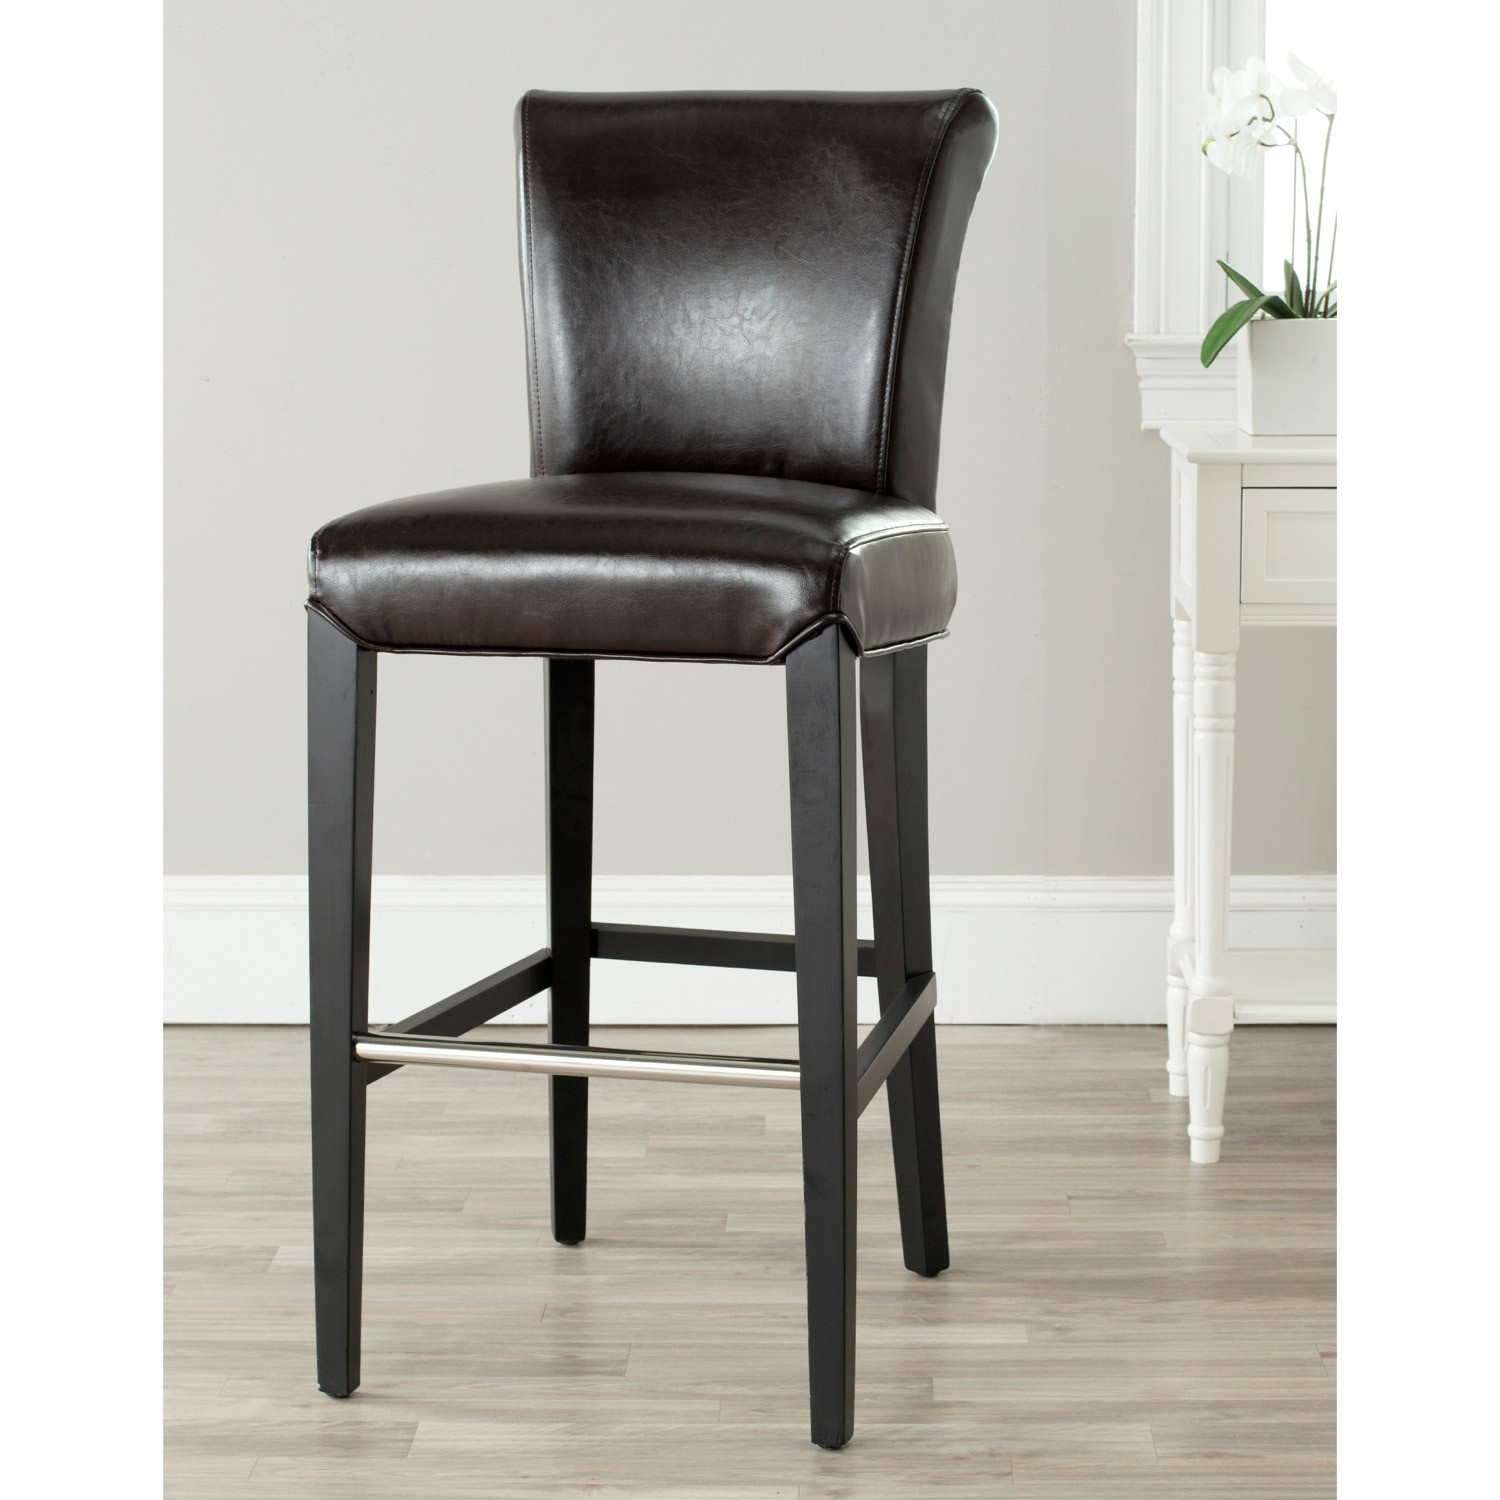 Upholstered Bar Chairs Upholstered Bar Stools With Backs Homesfeed